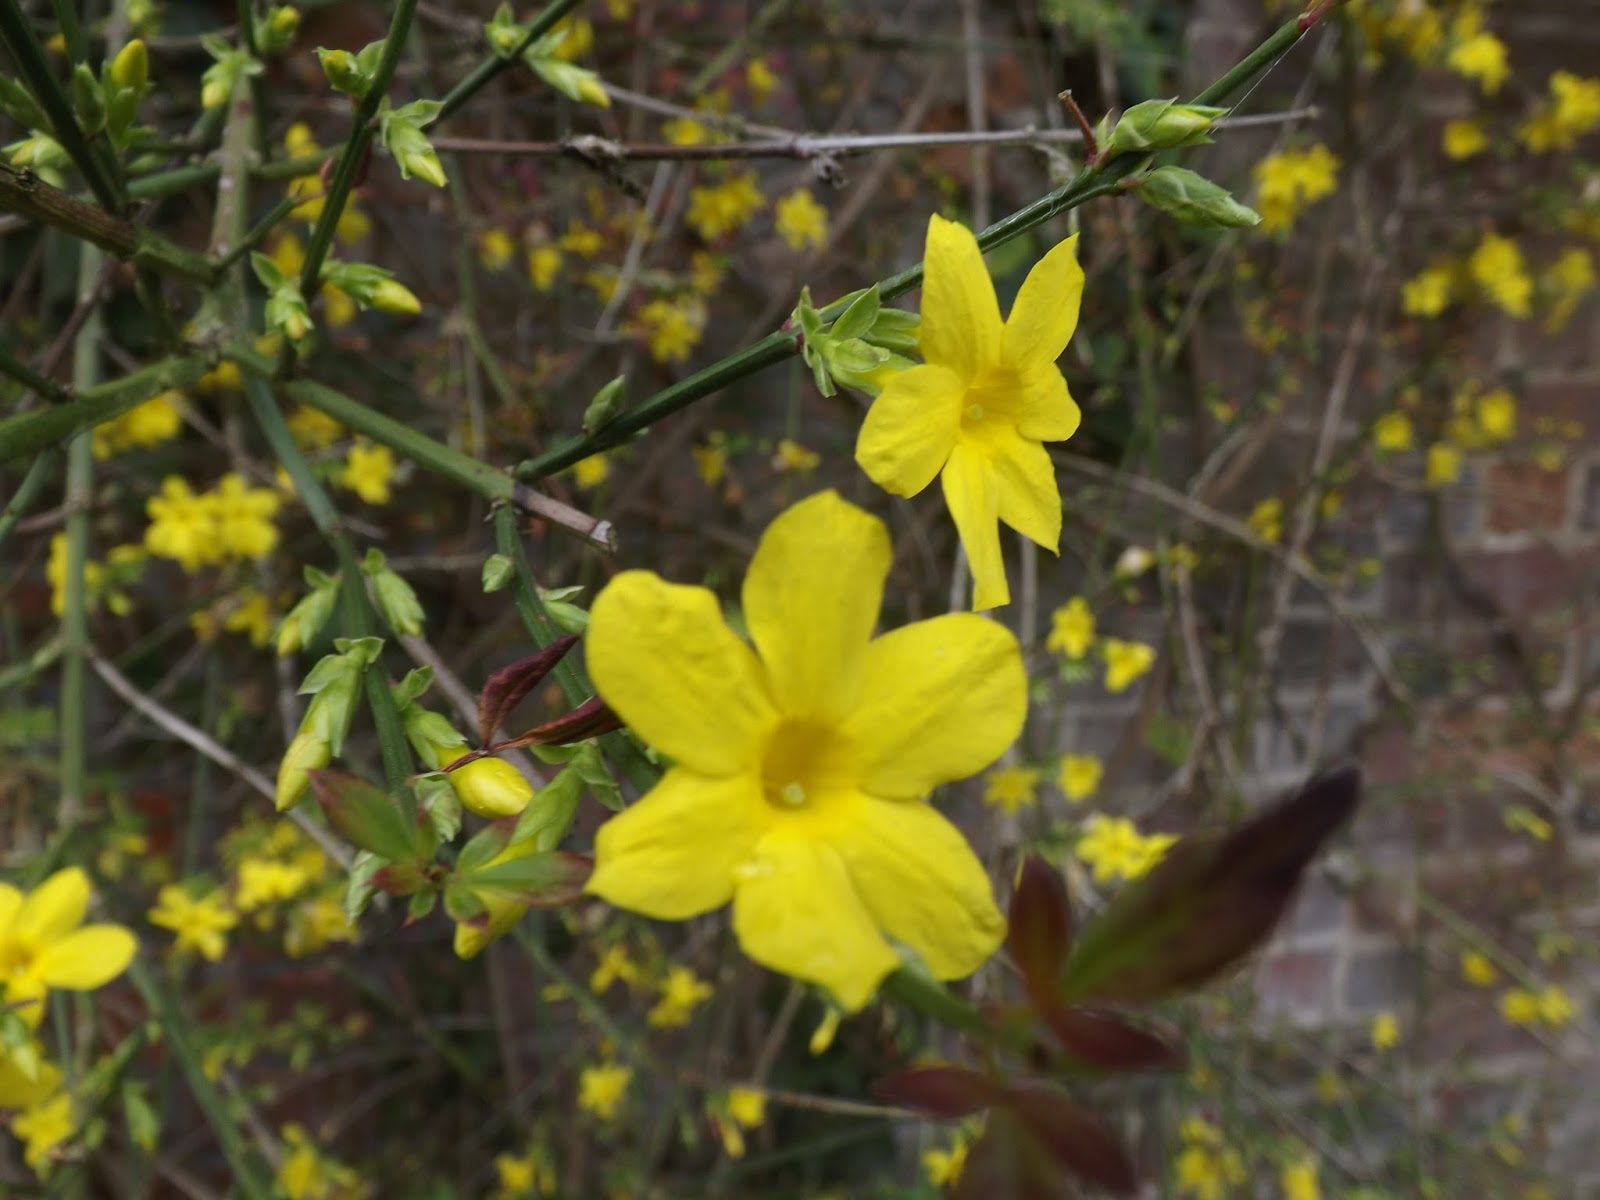 Winter Jasmine Bayleaf The Gardeners Plant Of The Week 15th